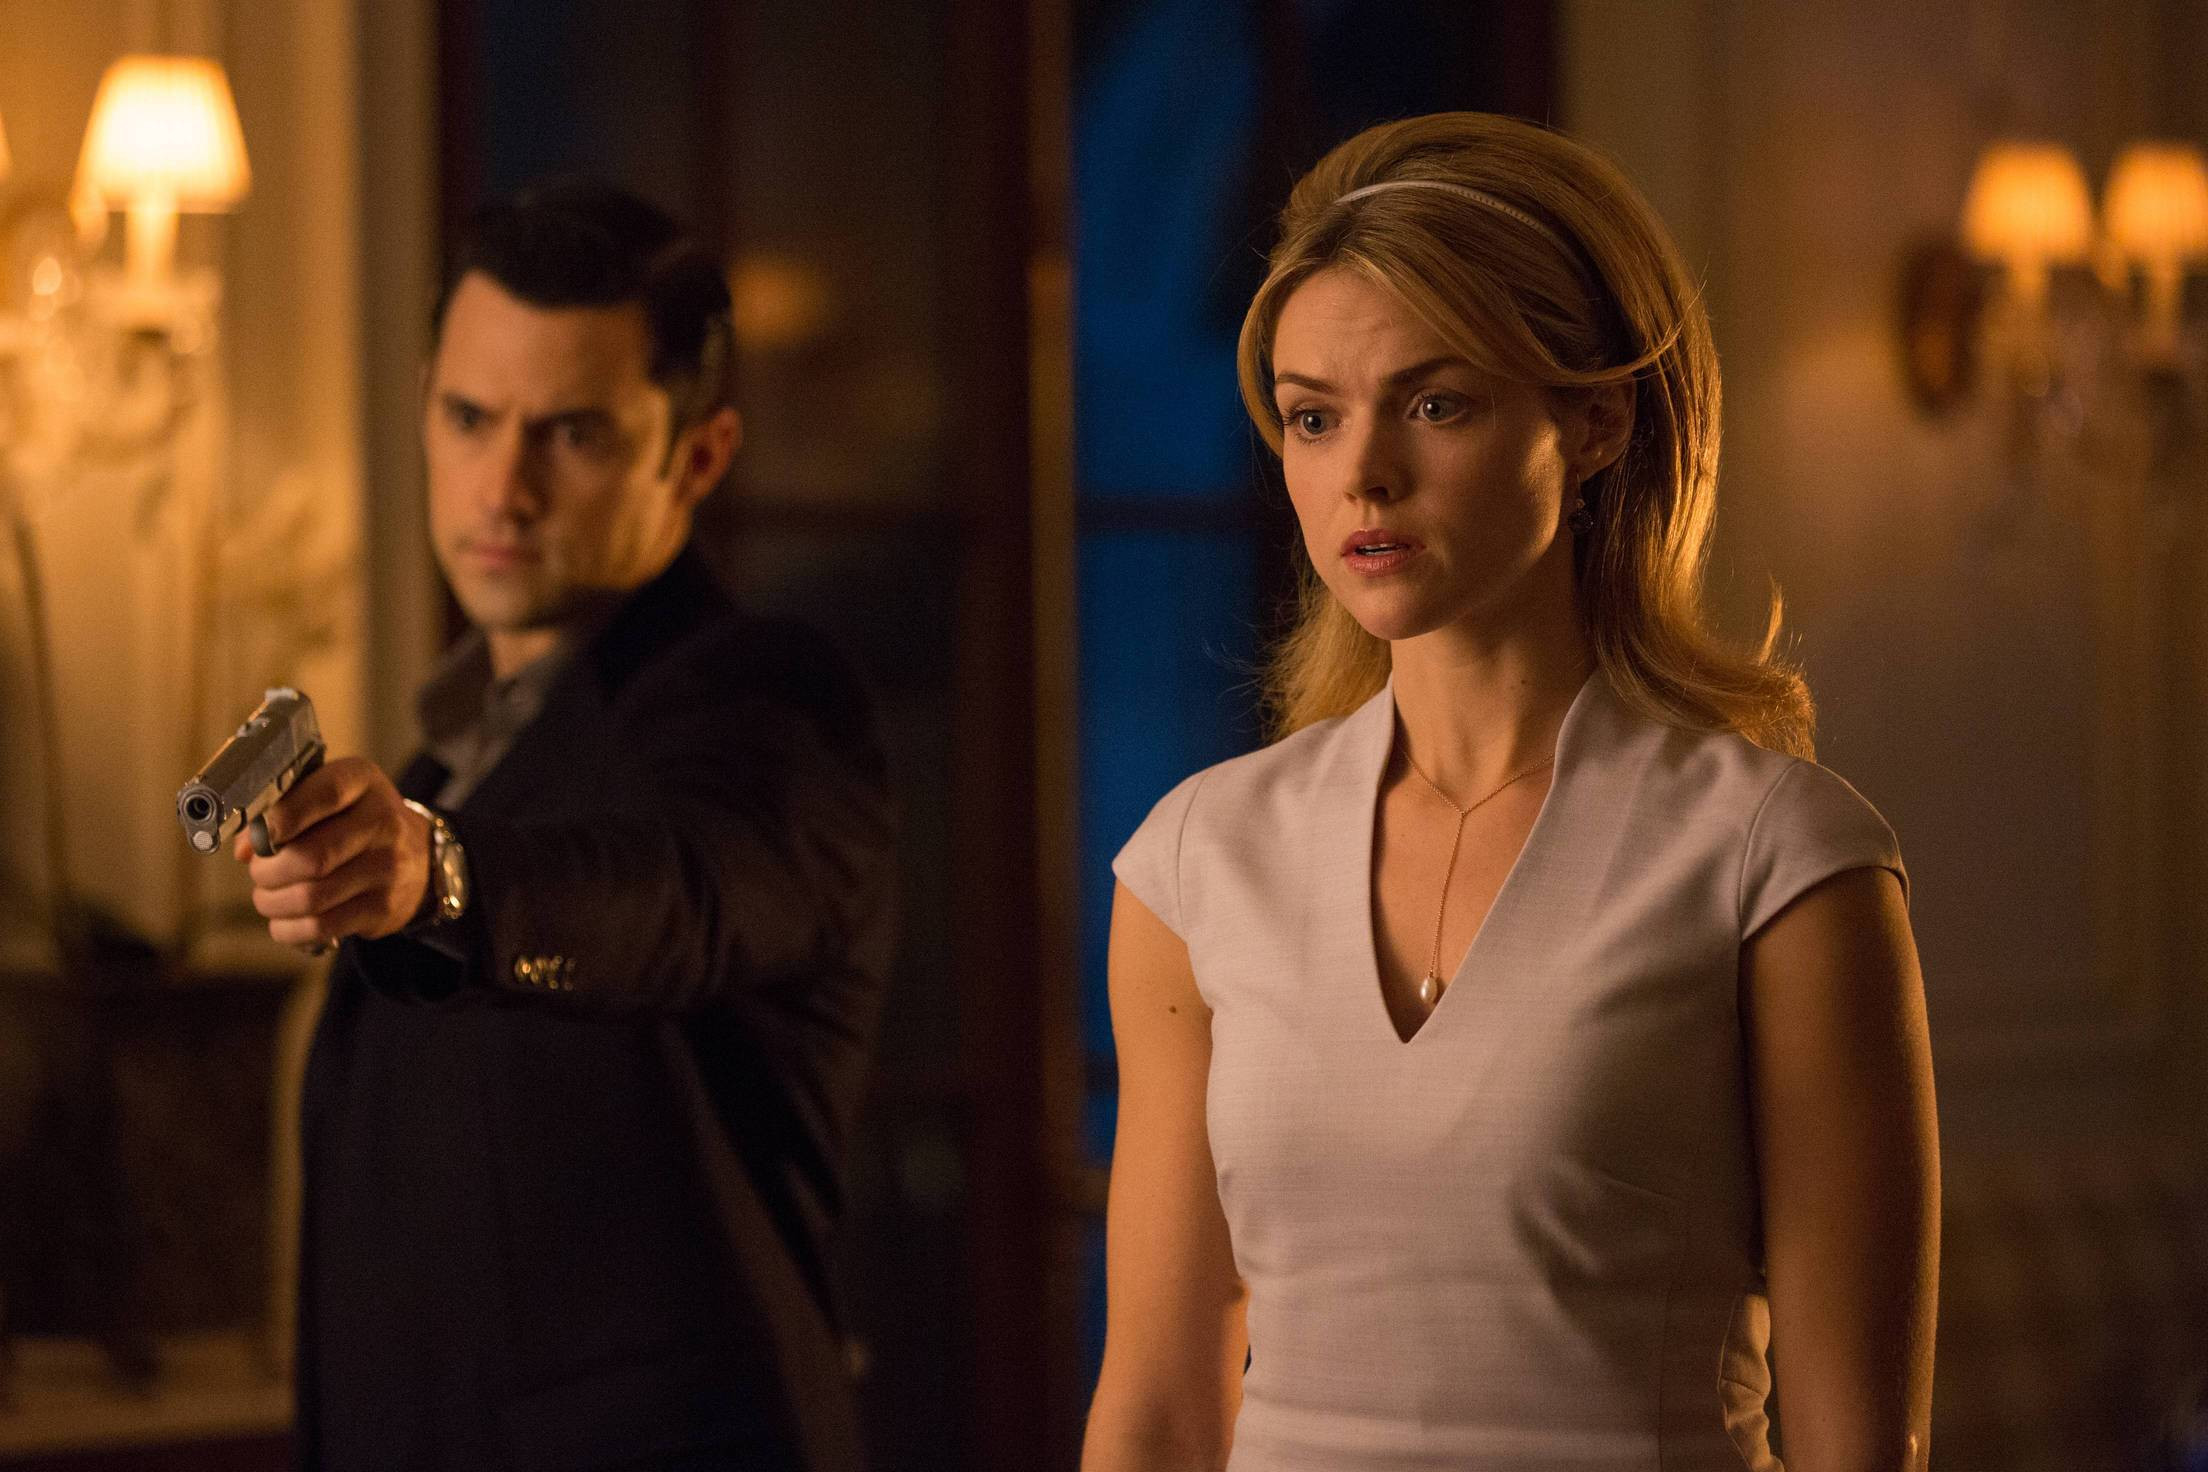 GOTHAM: Jason Lennon (guest Star Milo Ventimiglia, L) and Barbara (Erin Richards, R) in ÒThe Anvil or the HammerÓ episode of GOTHAM airing Monday, April 27 (8:00-9:00 PM ET/PT) on FOX. ©2015 Fox Broadcasting Co. Cr: Jessica Miglio/FOX.